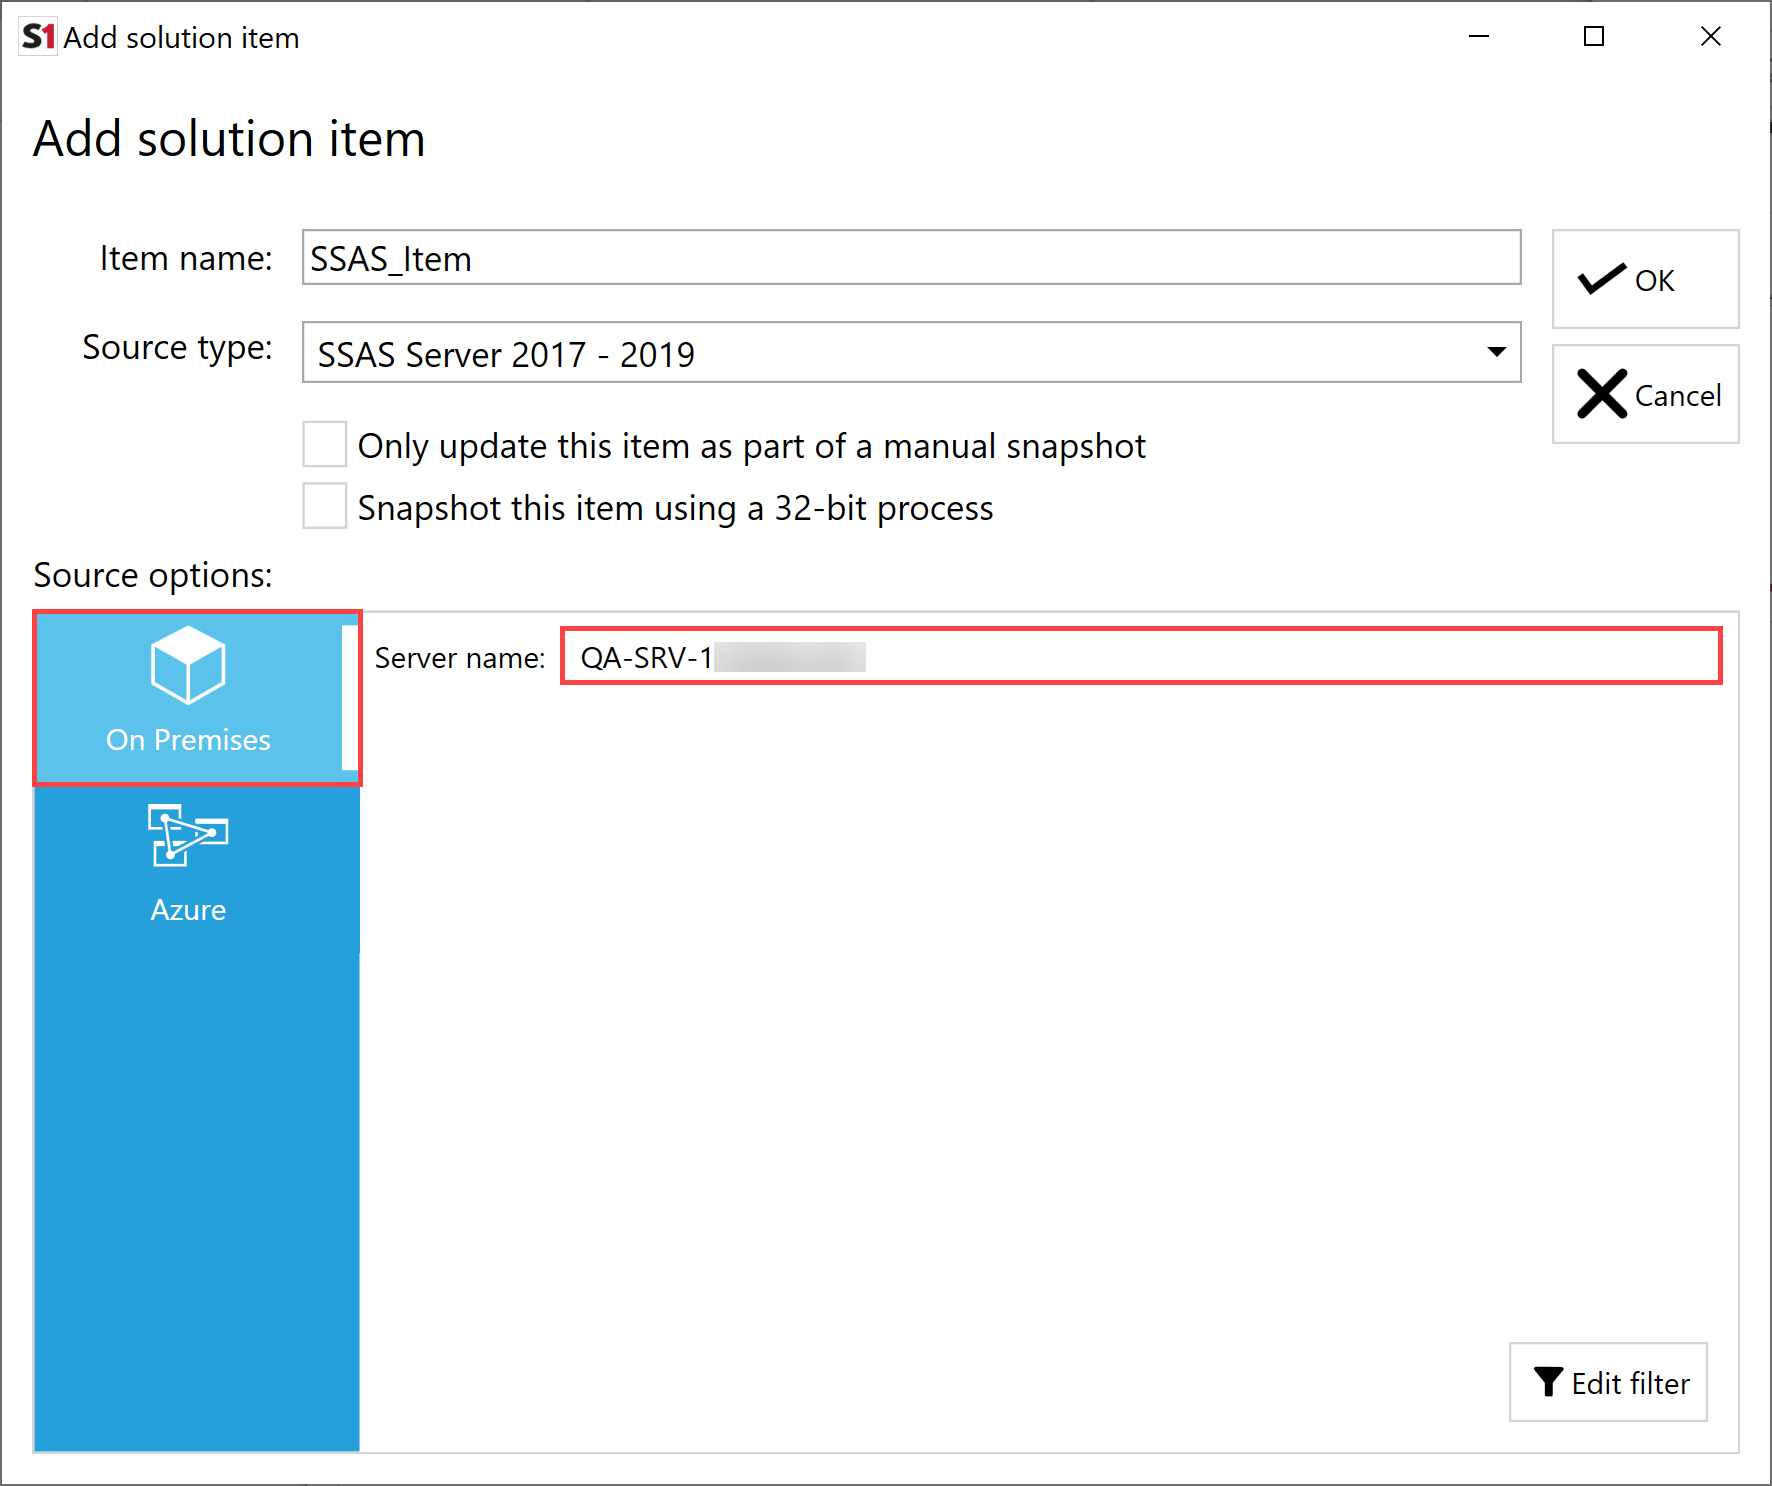 SentryOne Document Add Solution Item SSAS On Premises